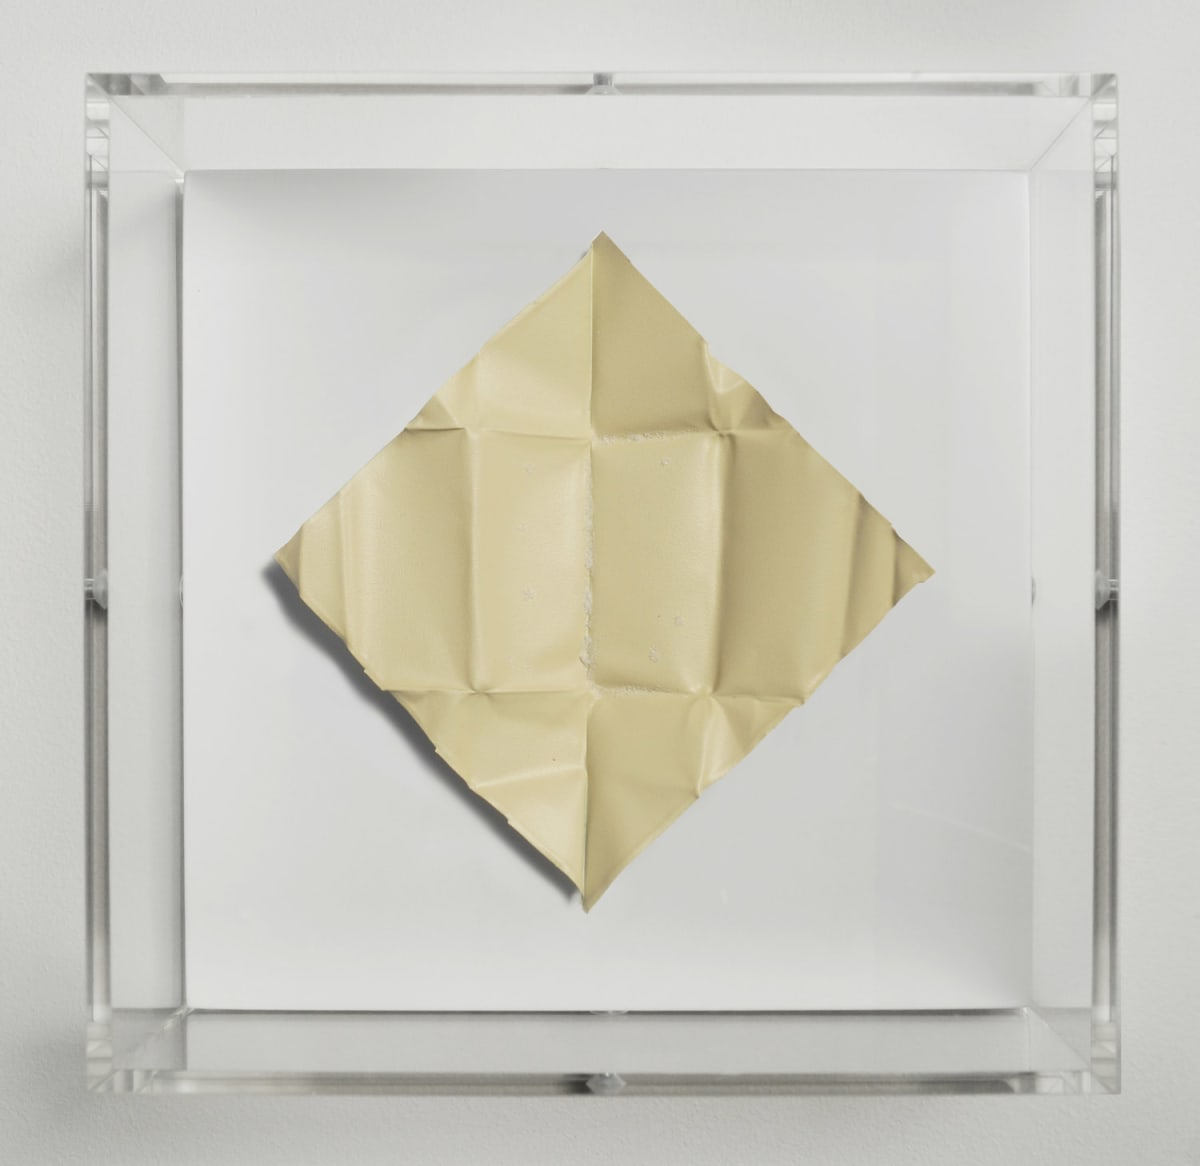 Mat Collishaw The Release - Vanilla, 2018 Diamond dust, folded aluminium, wood, acrylic, paint FRAMED 18.5 x 18.5 x 6.5 cm Edition of 10 Signed and numbered